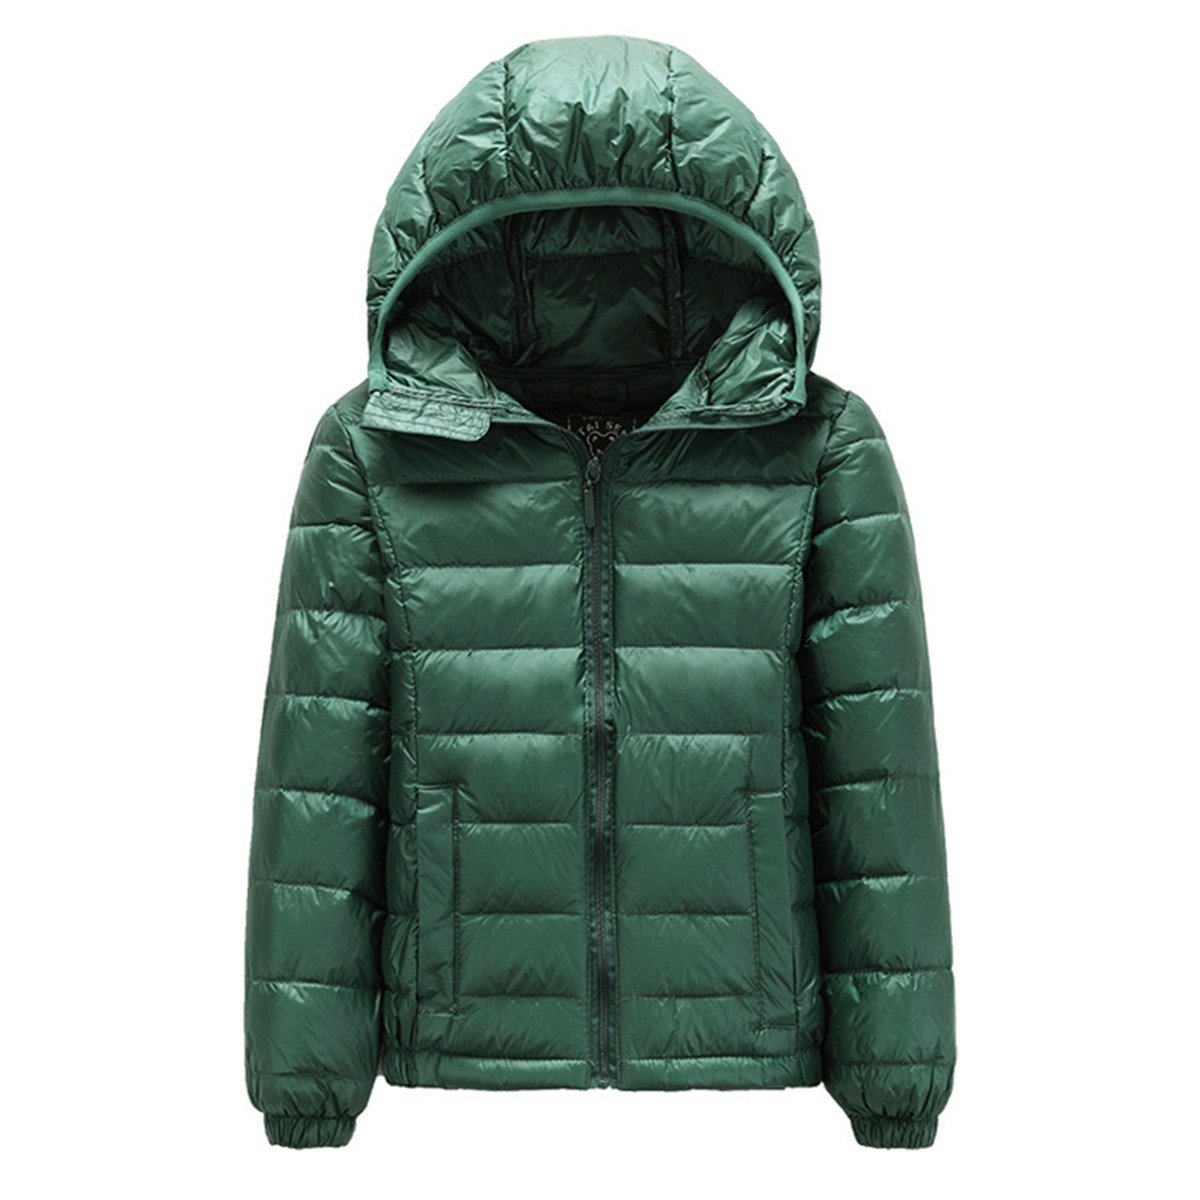 Ecollection Girls Boys Kids Down Winter Coat Hooded Jacket 9 Color